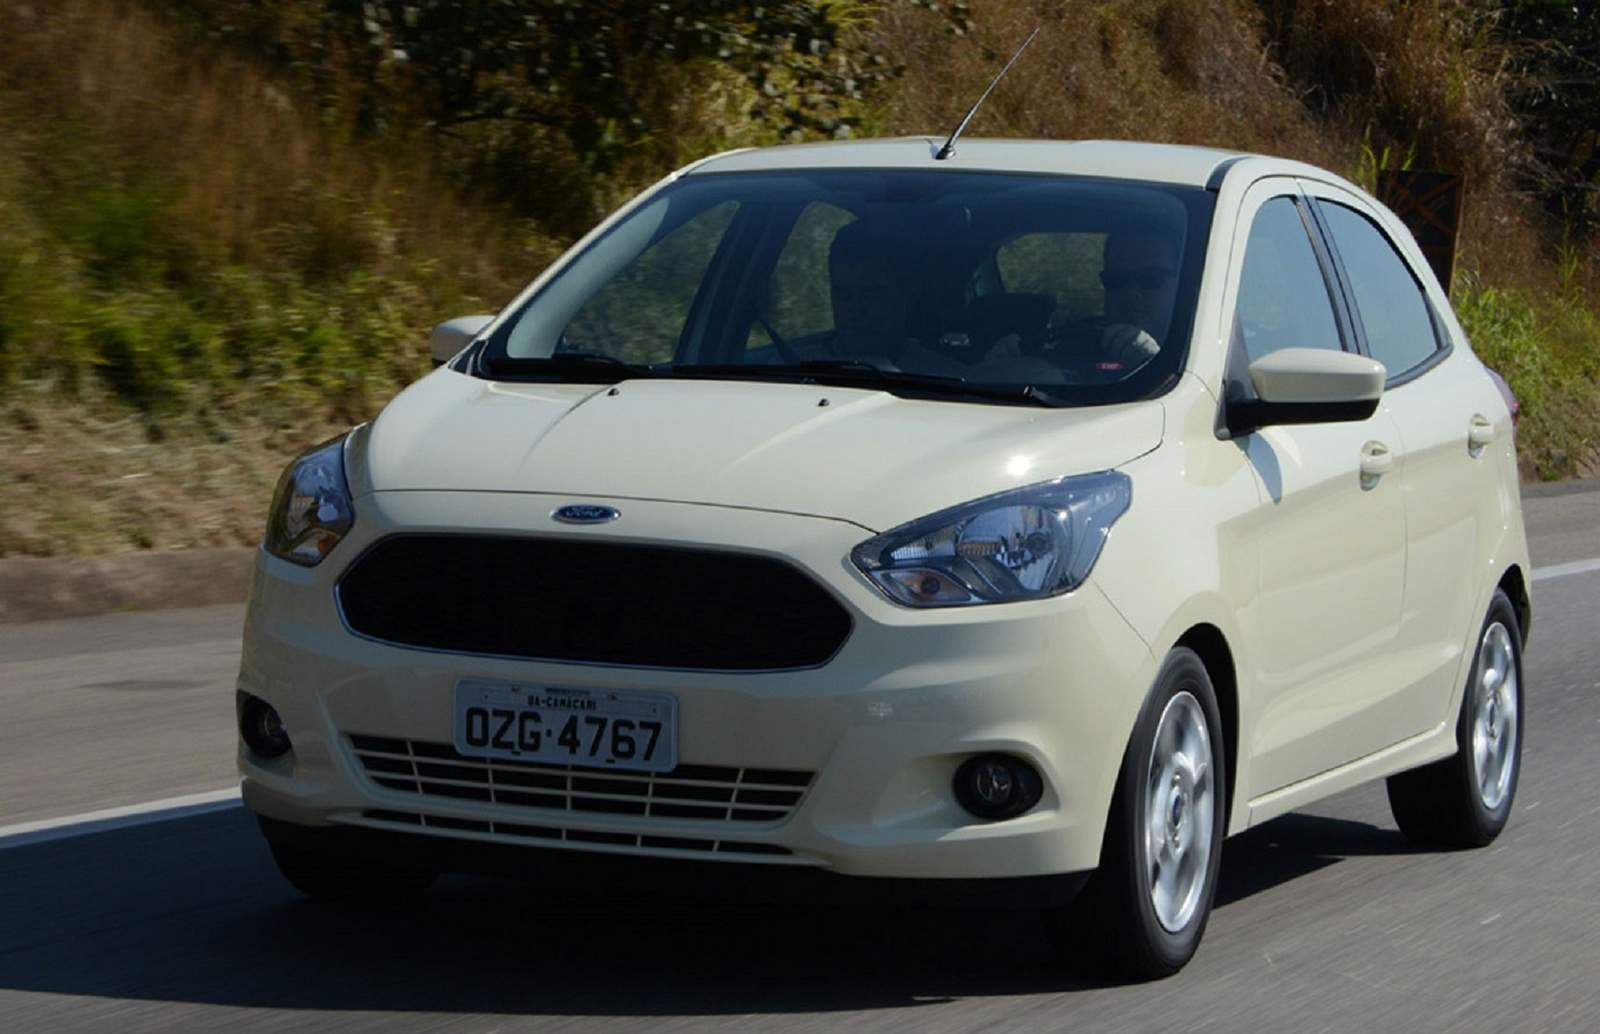 novo ford ka 2015 pre o parte de r reais car. Black Bedroom Furniture Sets. Home Design Ideas